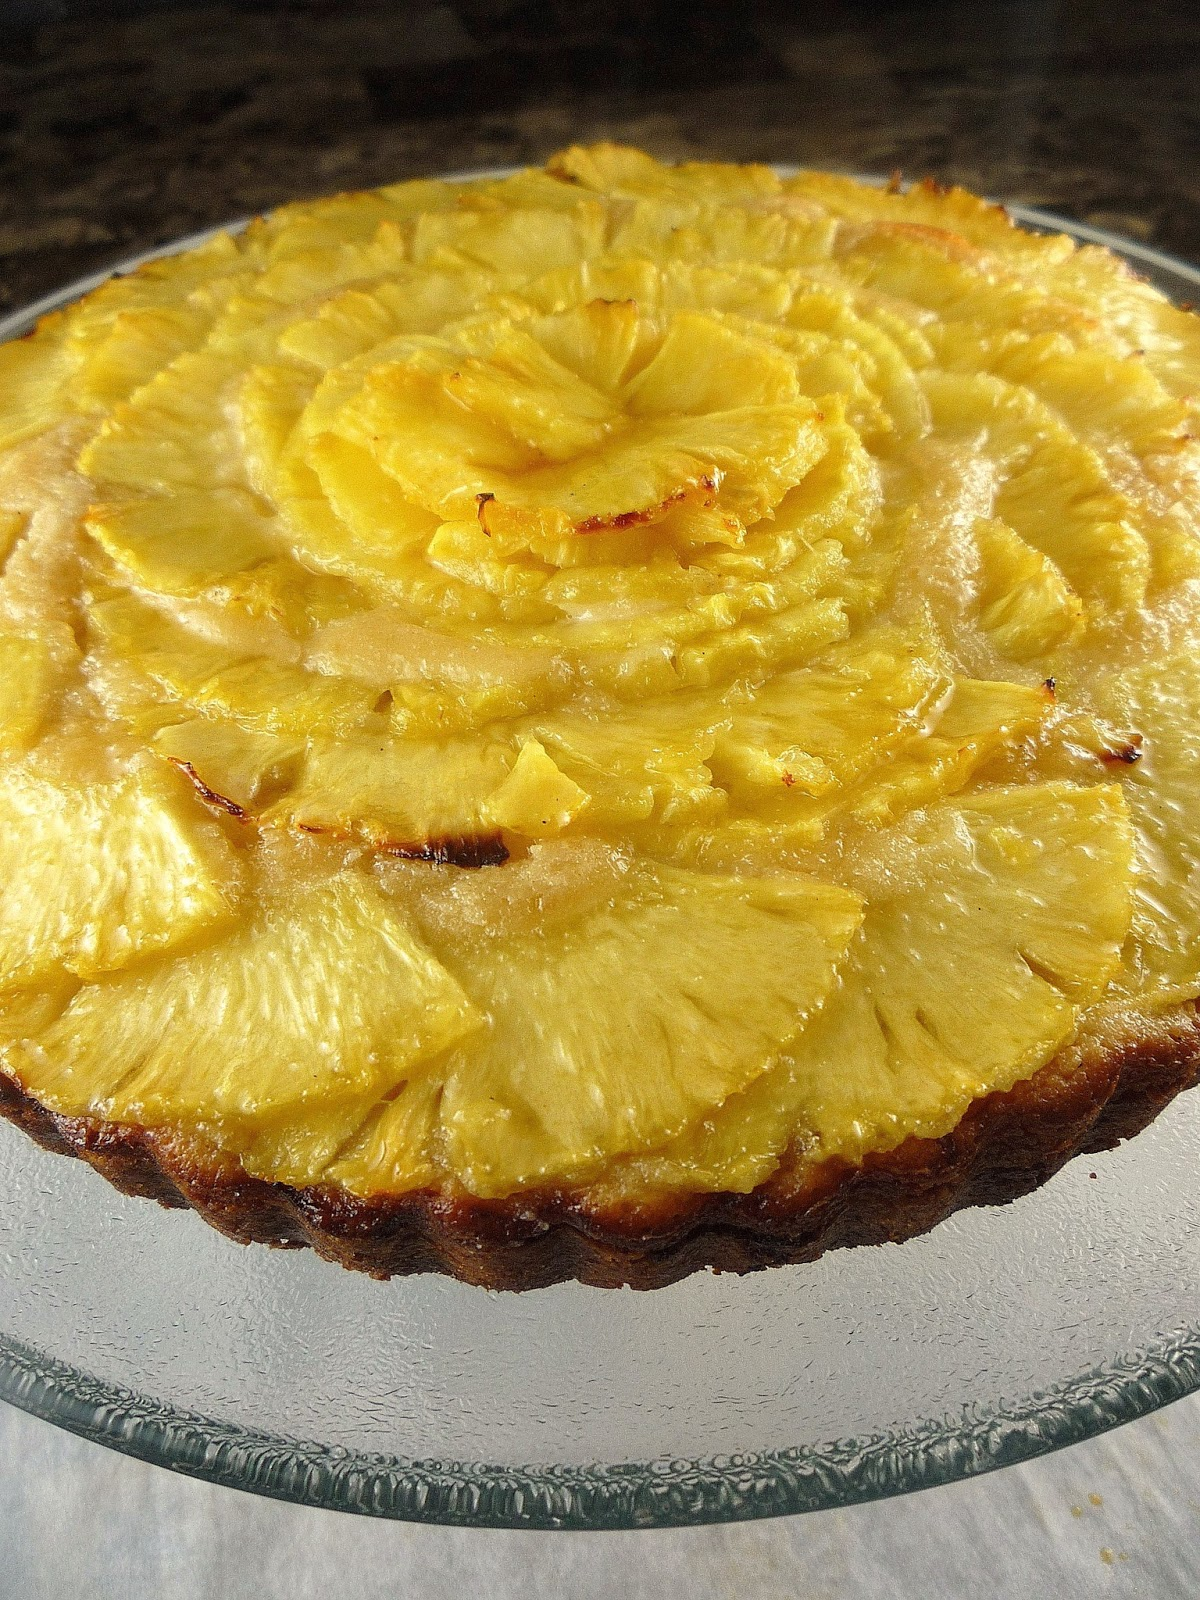 ... : Bear Essentials: Pineapple ( + Pineapple and Macadamia Nut Tart